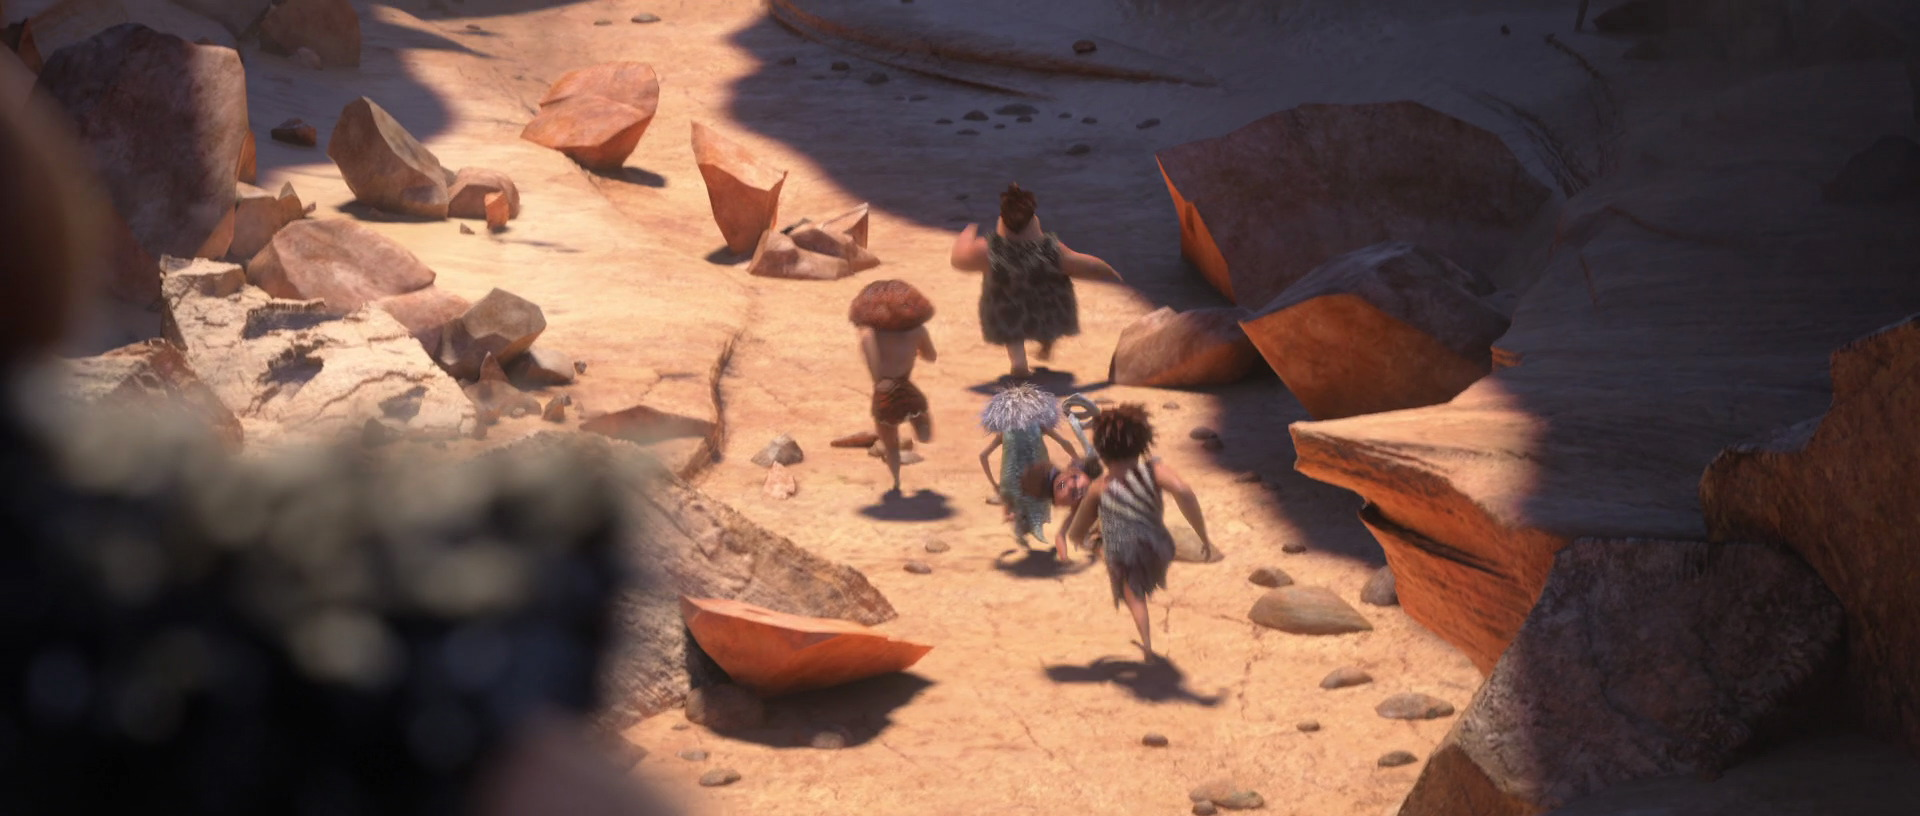 the-croods-disneyscreencaps.com-2712.jpg